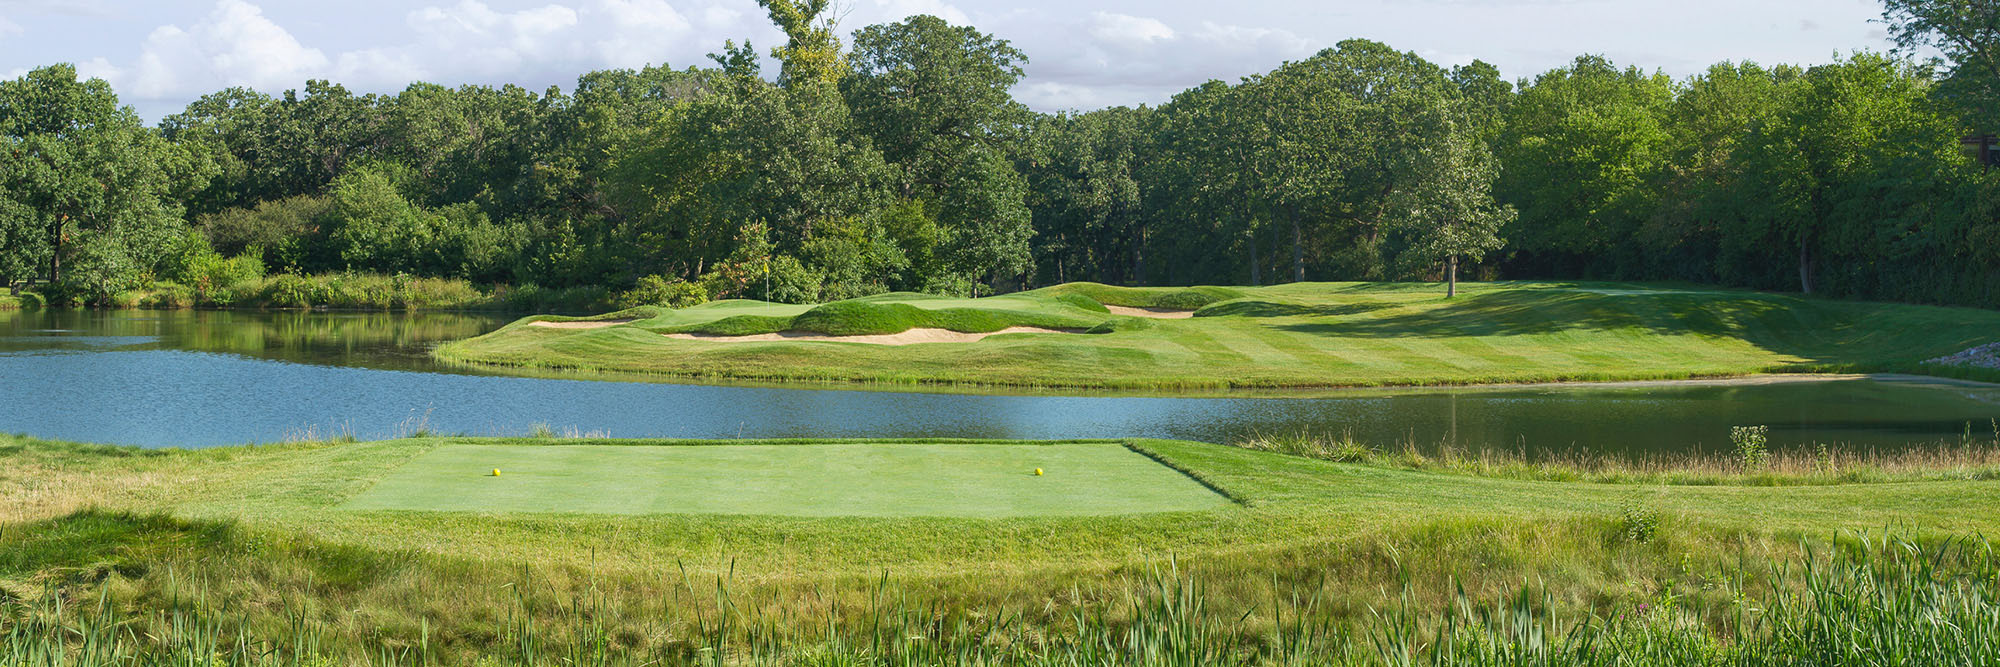 Golf Course Image - Olympia Fields South No. 14